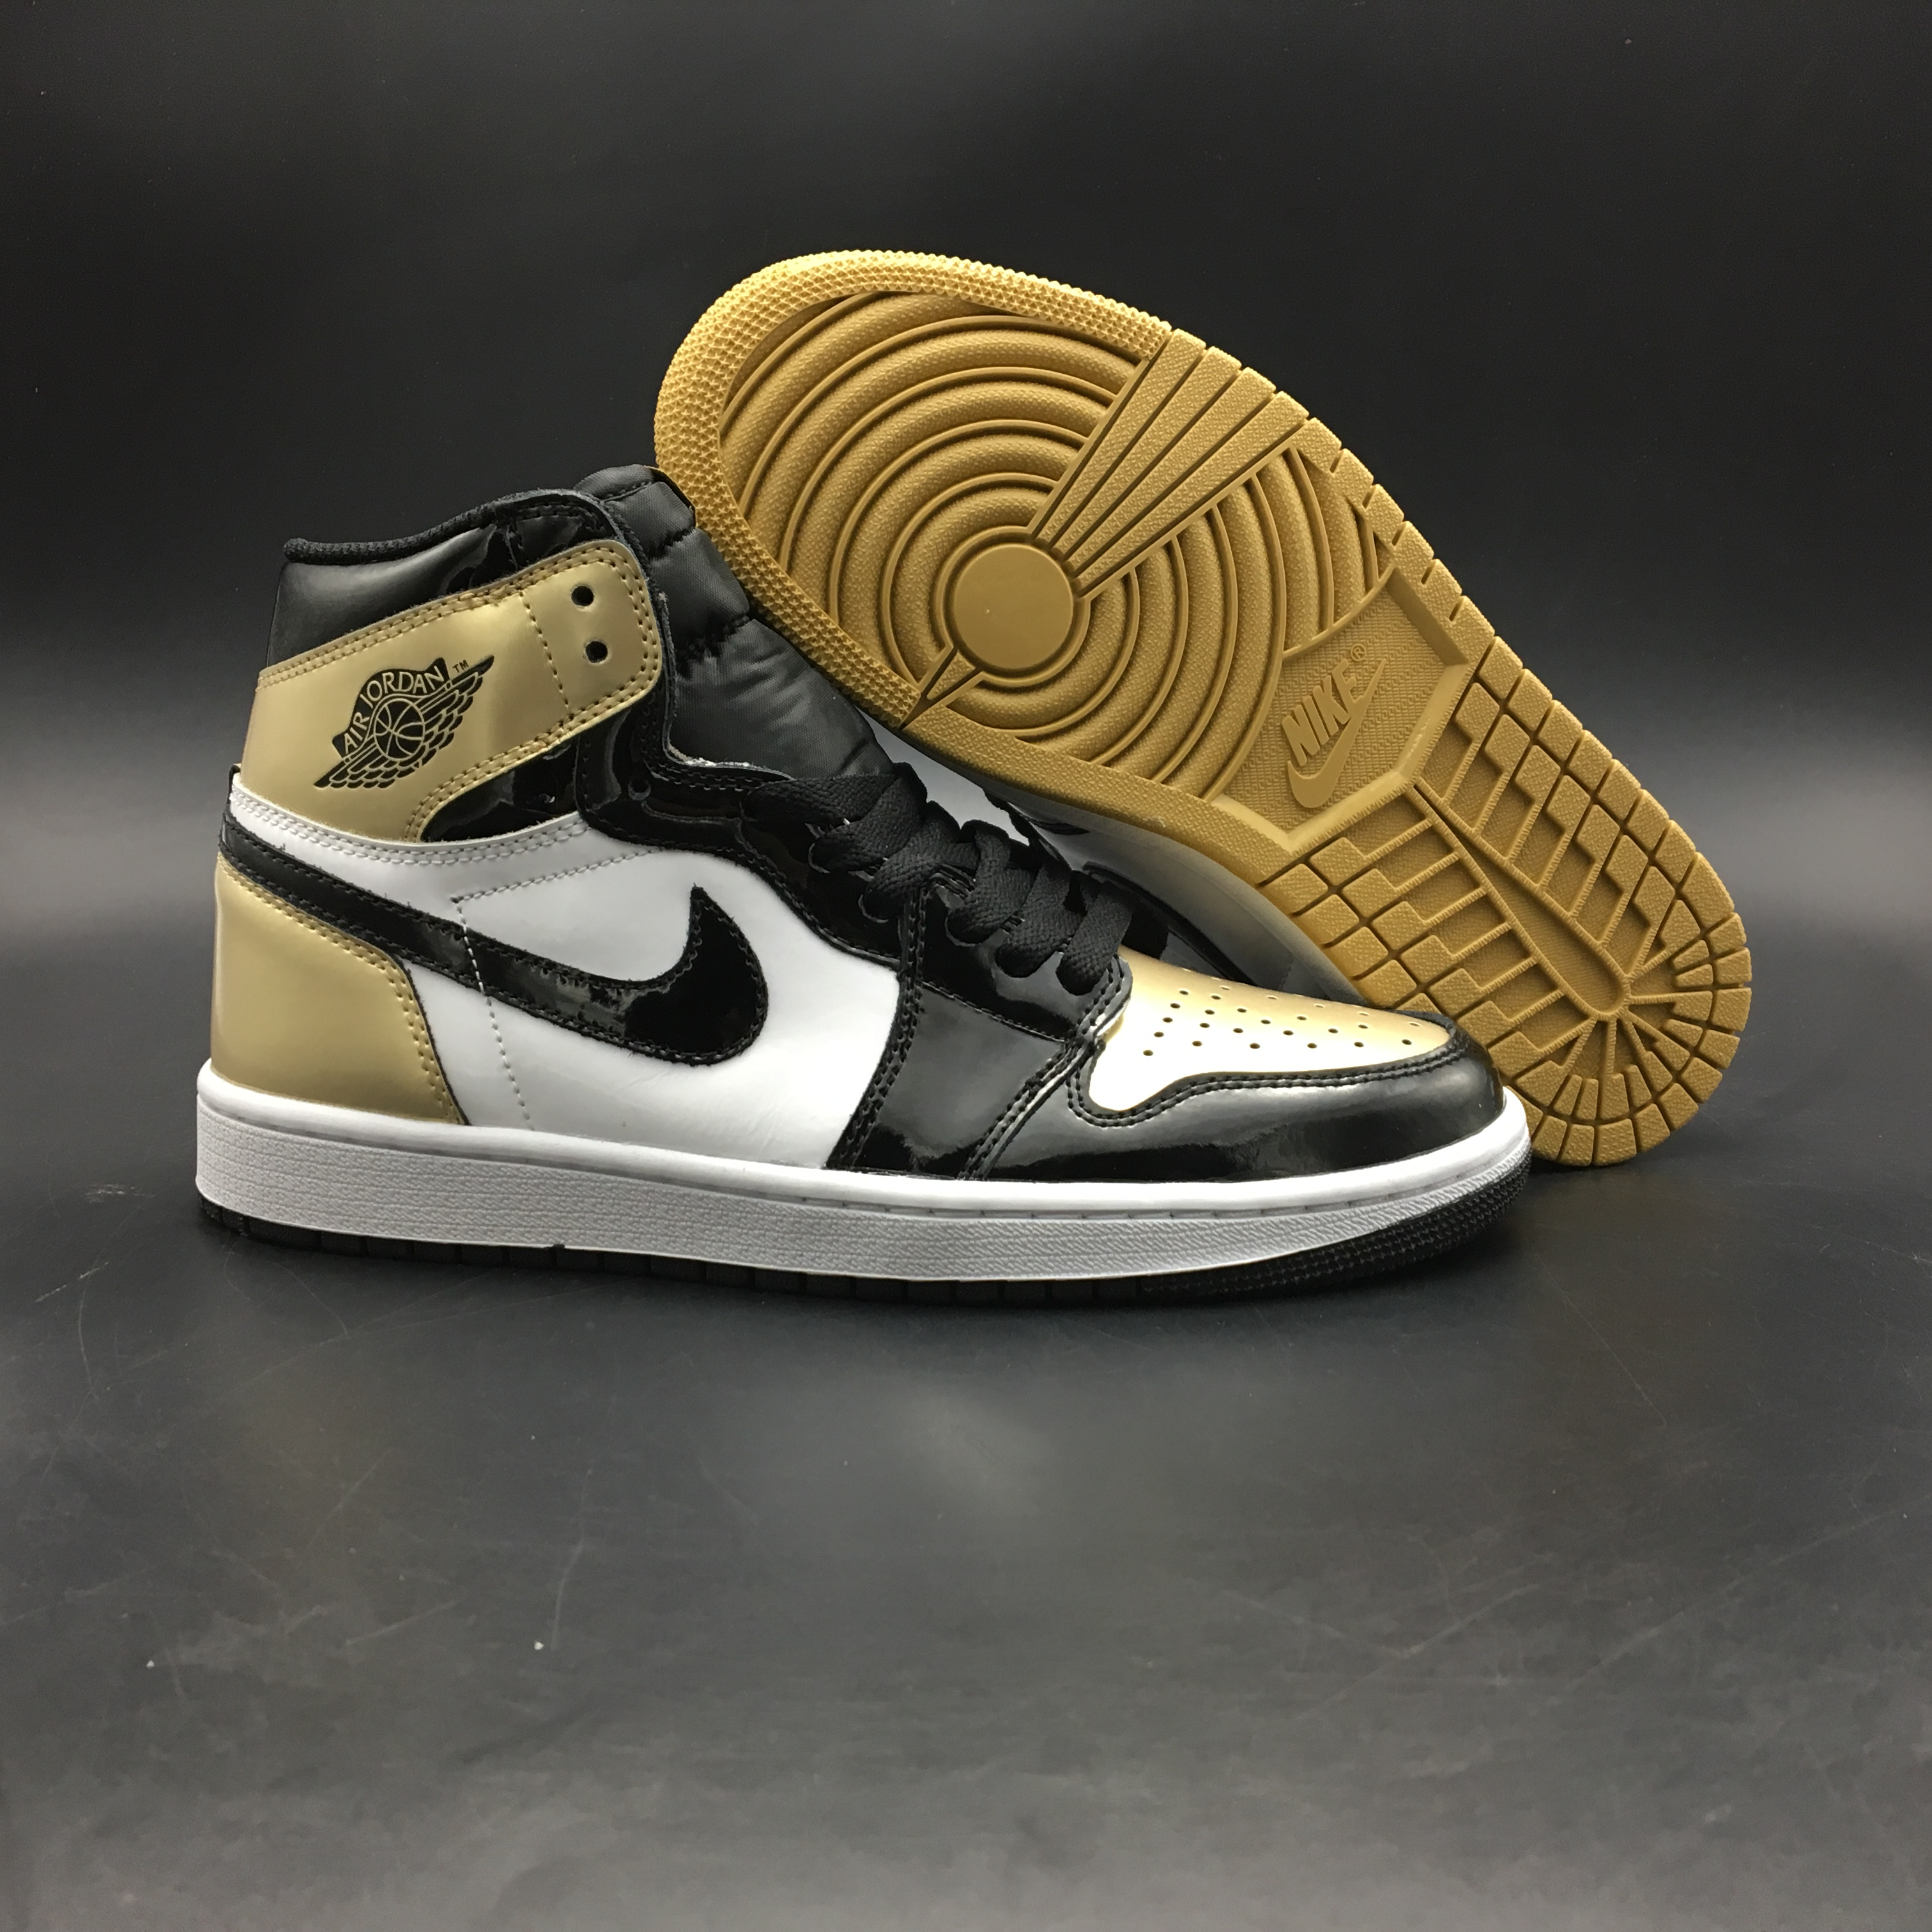 Air Jordan 1 Madrick Duck White Gold Black Shoes